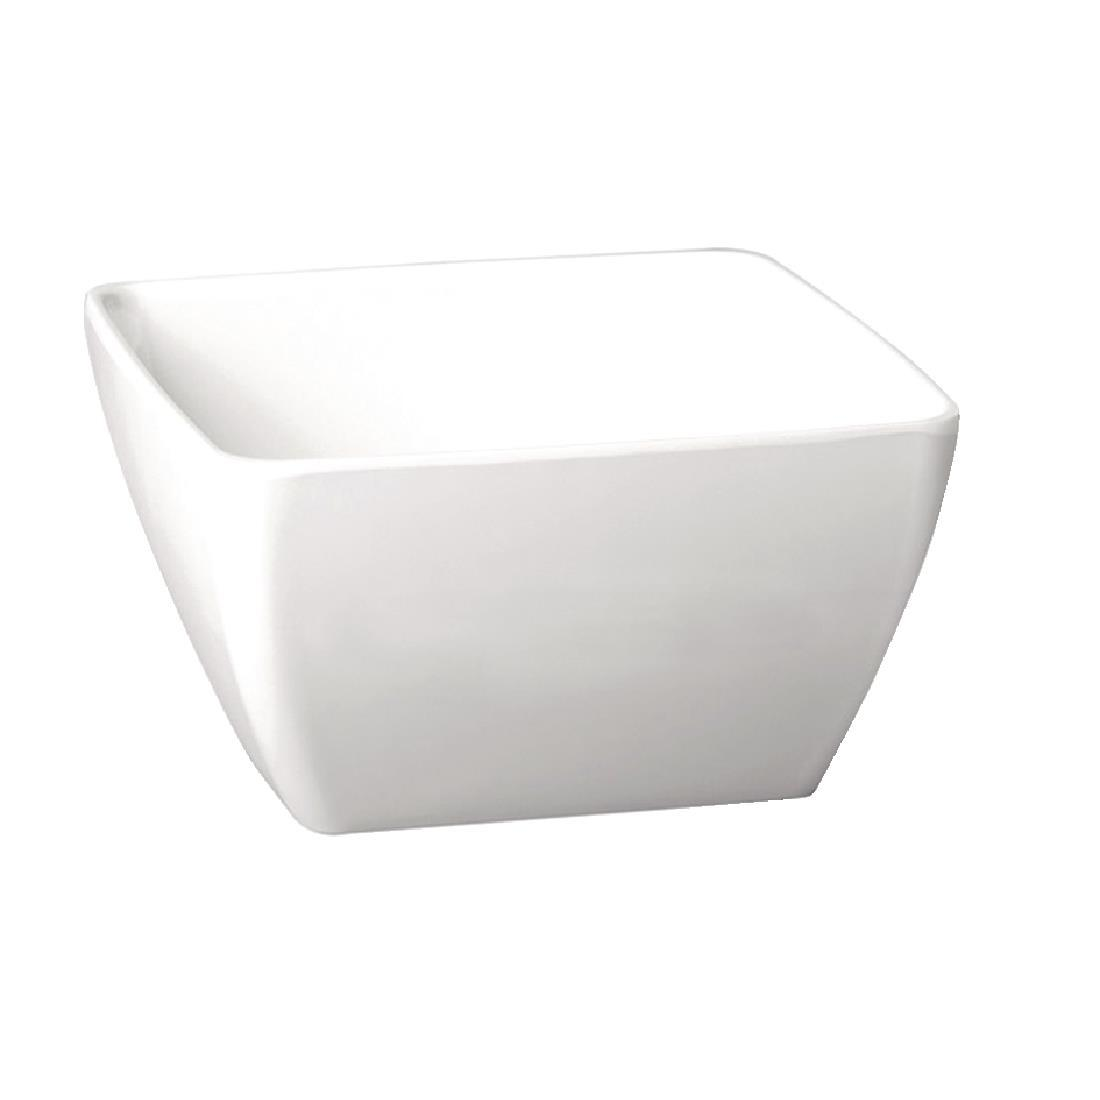 GF132 - APS Pure Melamine White Square Mini Bowl - Each - GF132